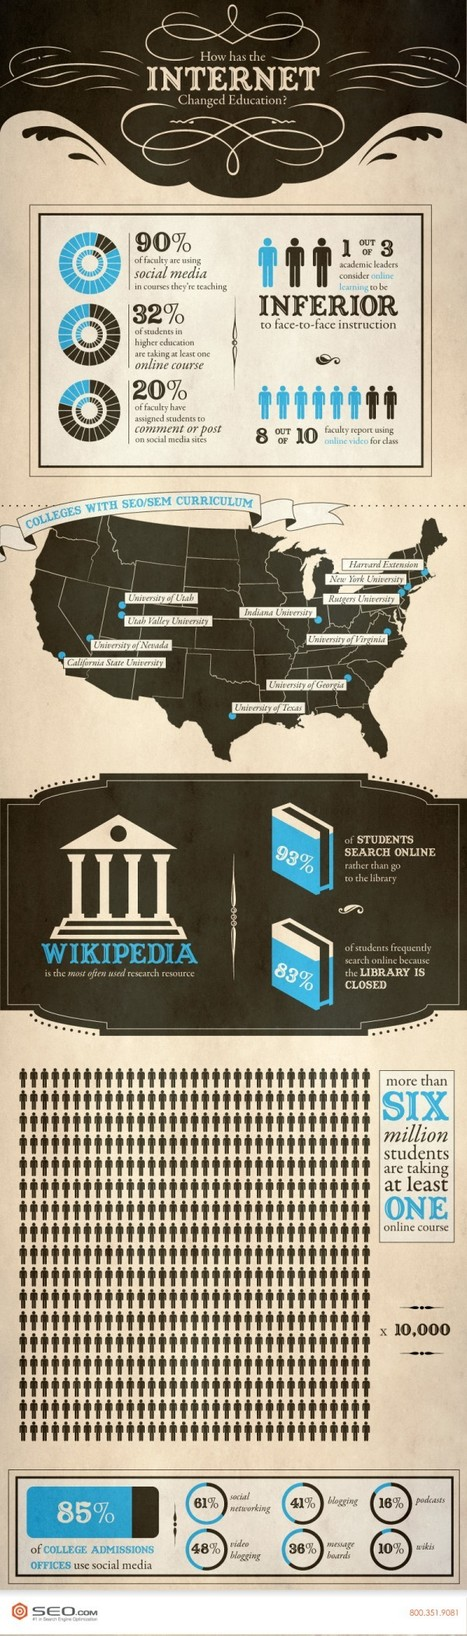 Case Study: How Wikipedia has changed Education from Internet [Infographic] | An Eye on New Media | Scoop.it